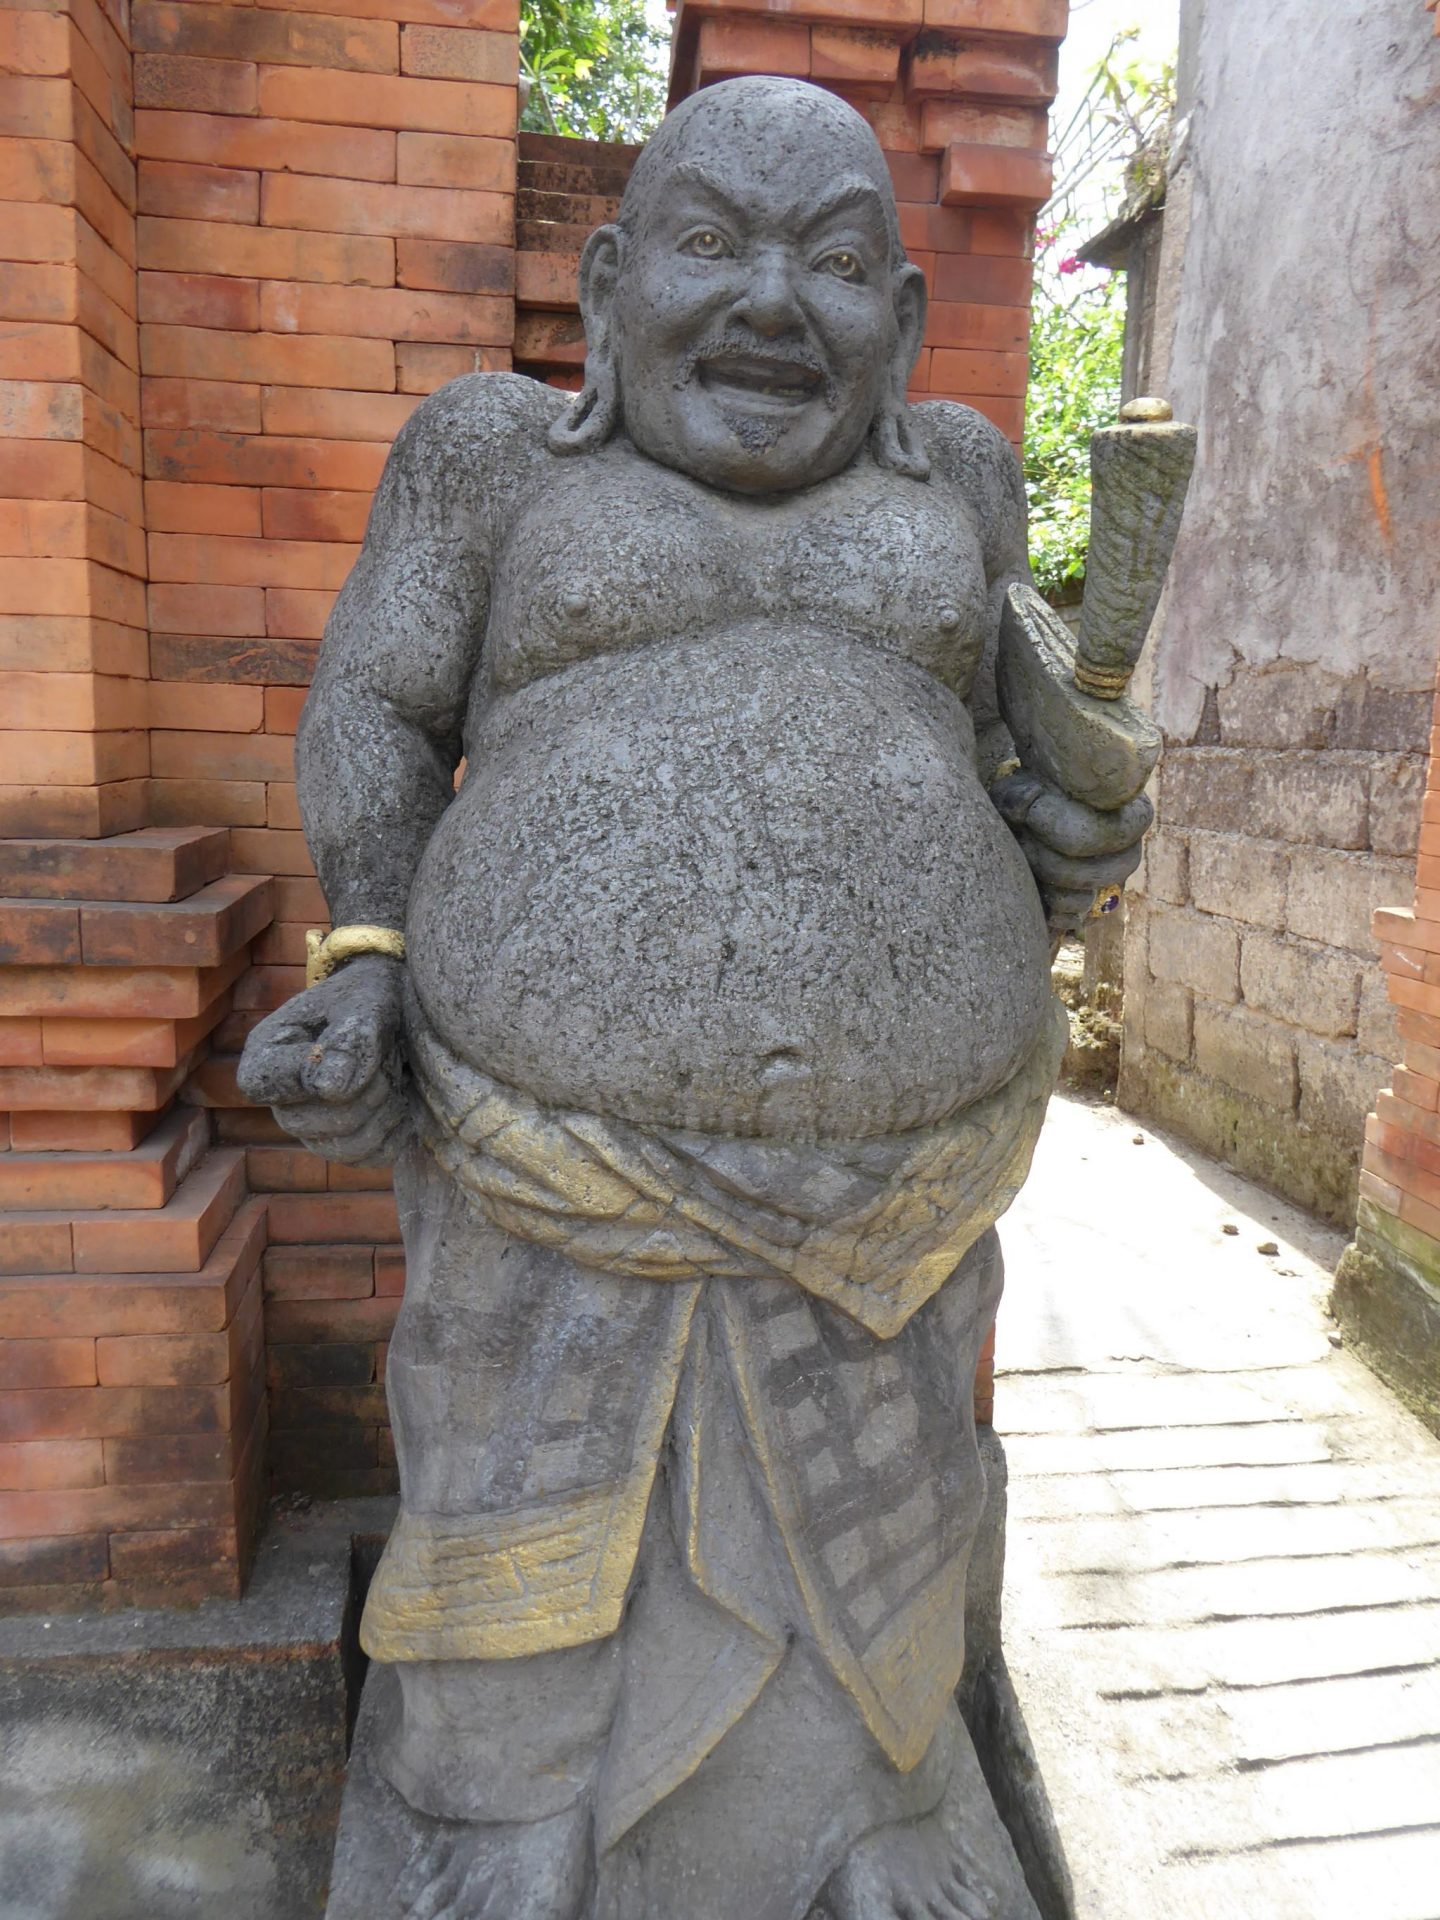 A Hindu statue of a man found in Ubud whilst backpacking Bali